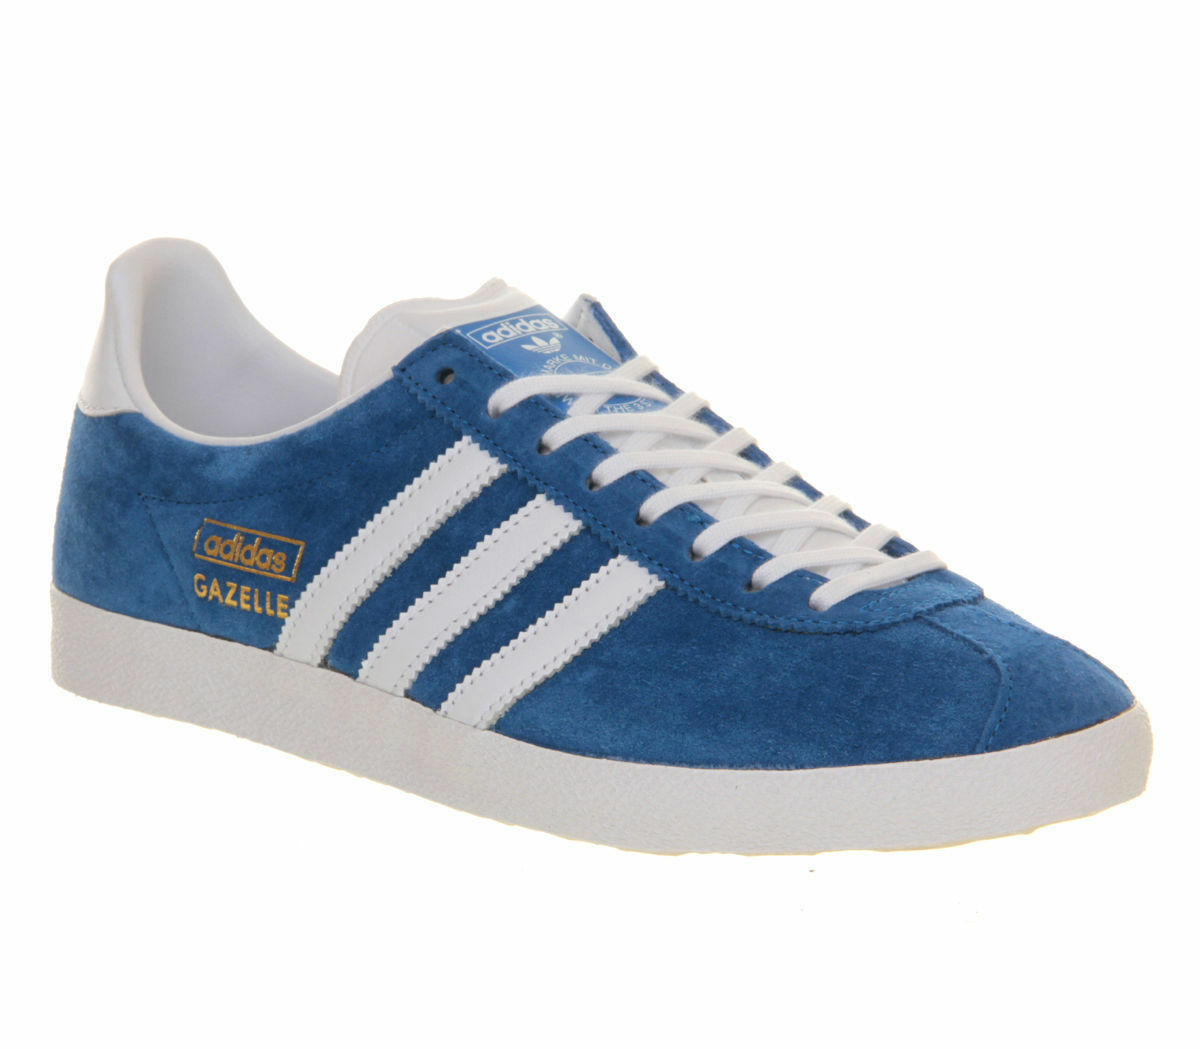 adidas Gazelle Trainers for Men for Sale | Authenticity Guaranteed ...